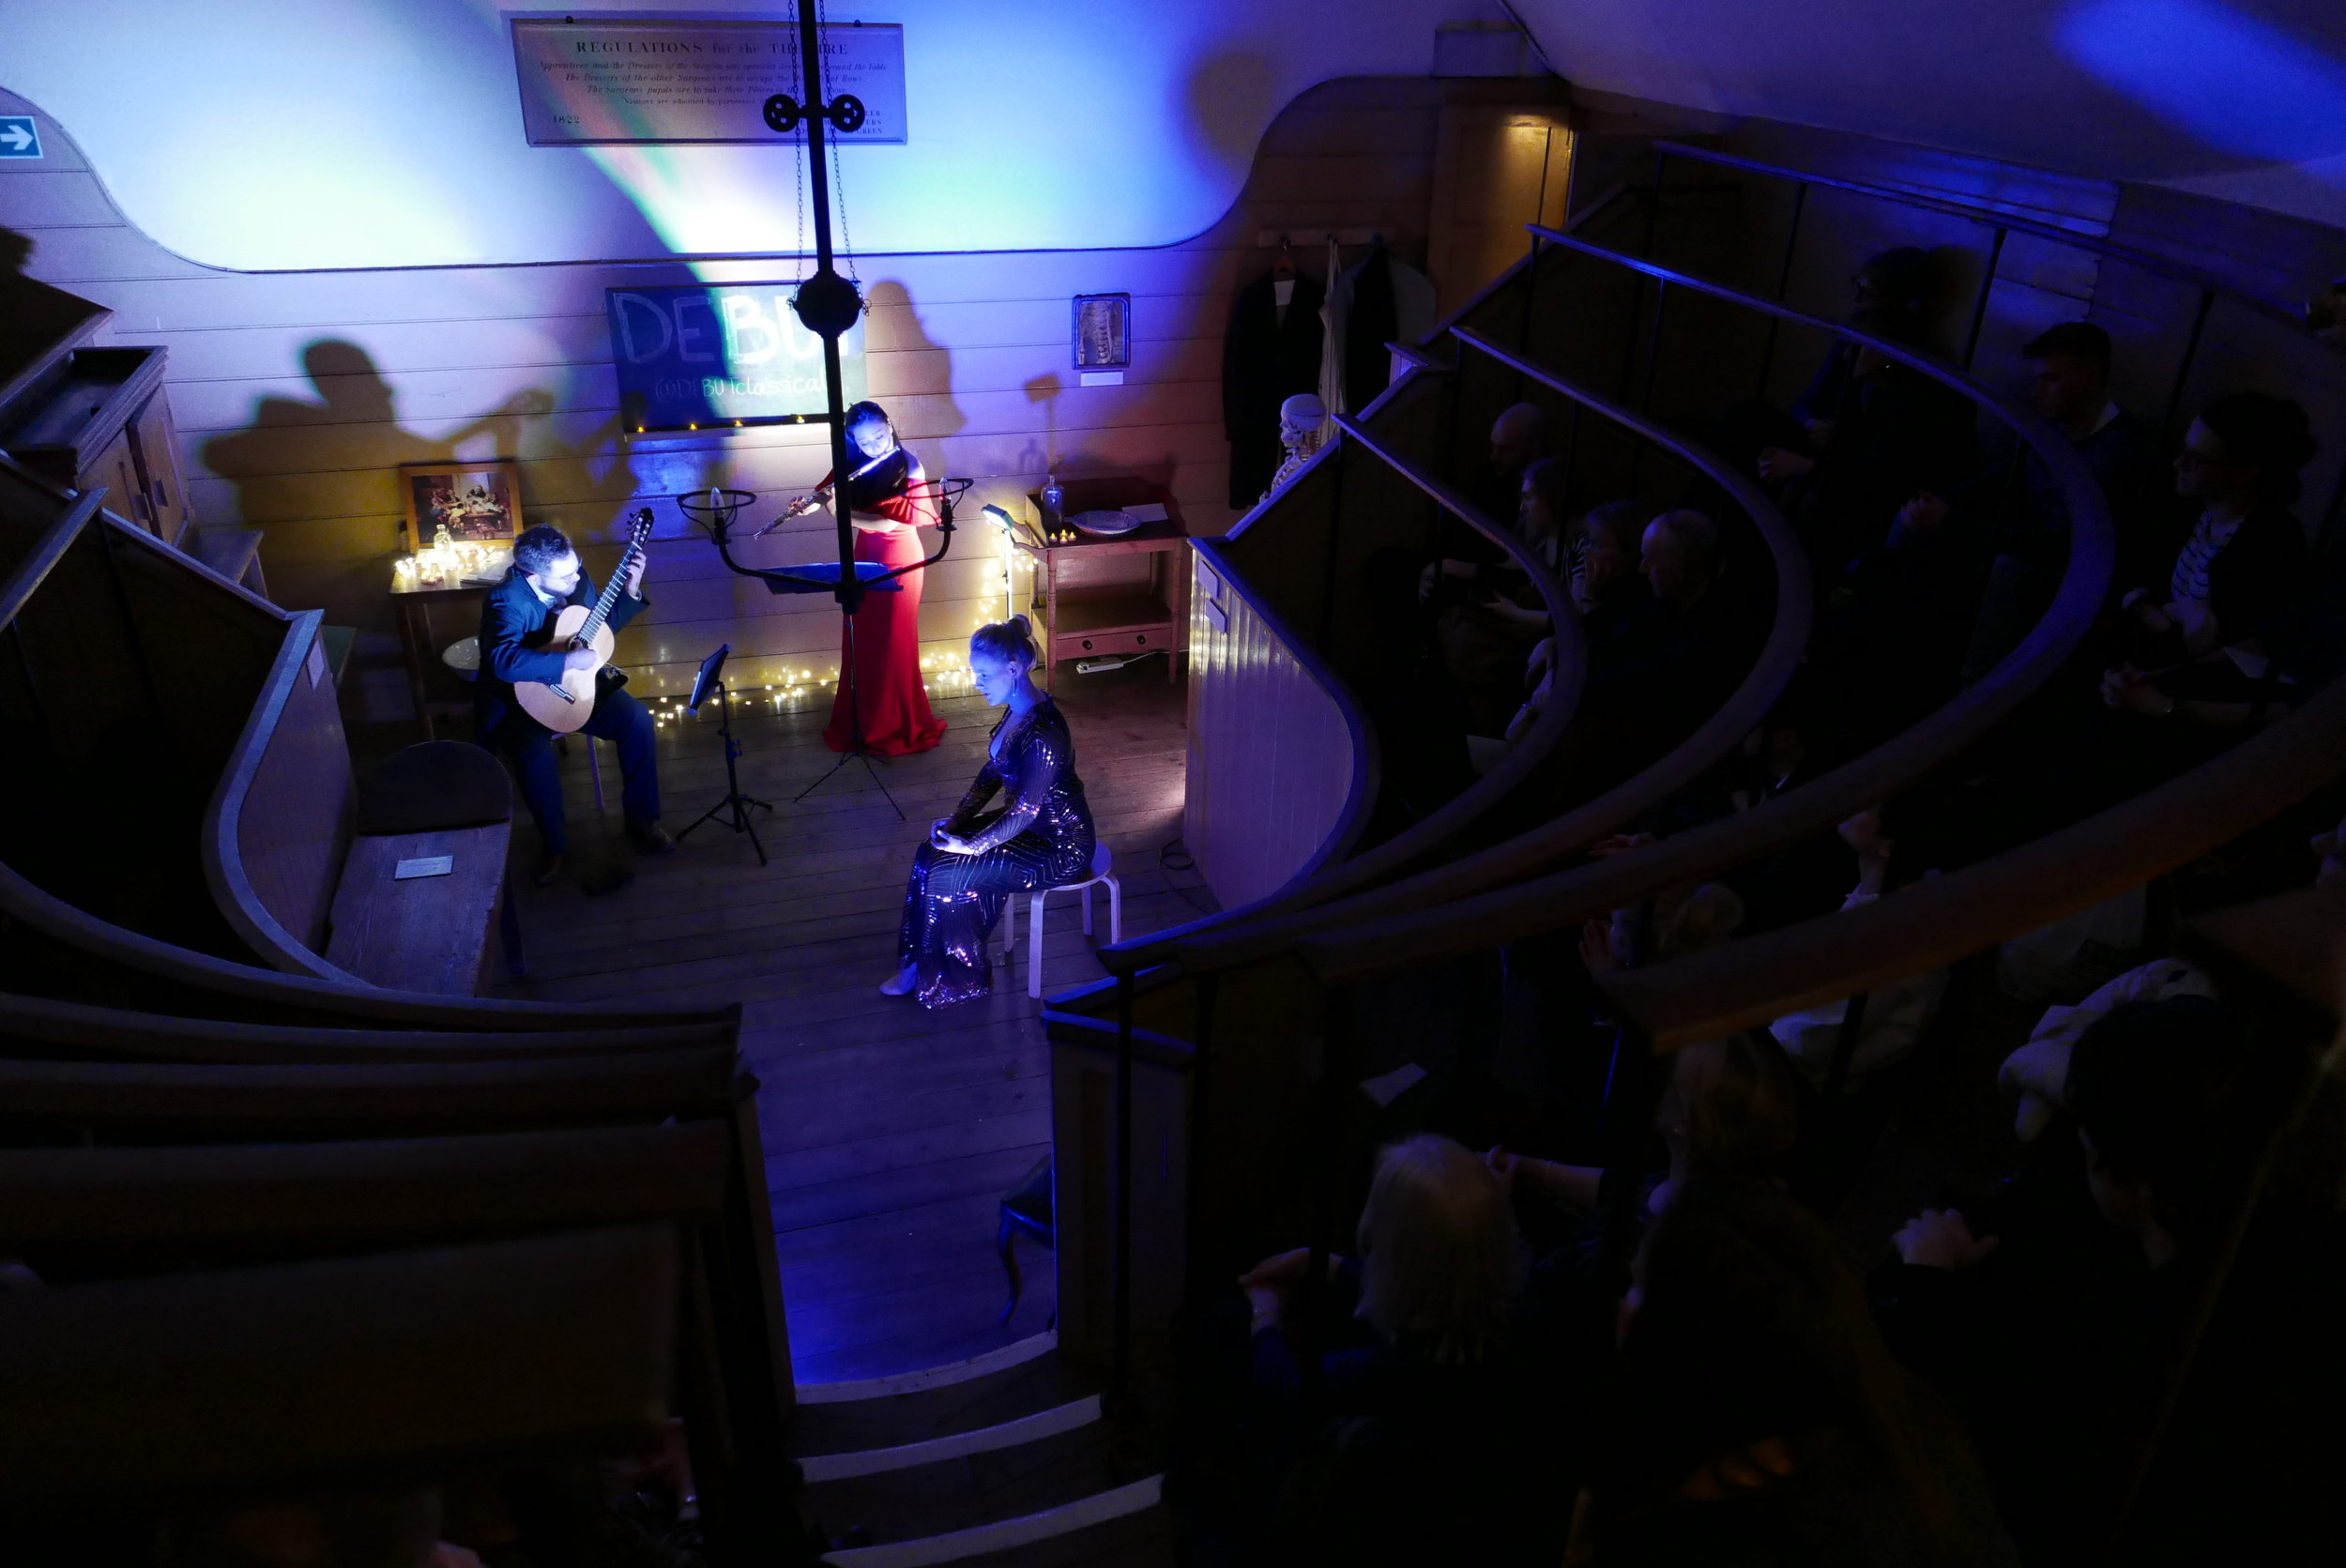 debut at the old operating theatre - It was our first time at this incredible venue. Check out the photos from our DEBUT at the Old Operating Theatre concert (including some behind the scenes snaps!) and a video of Danny Boy recorded live on the night.Check out the photos